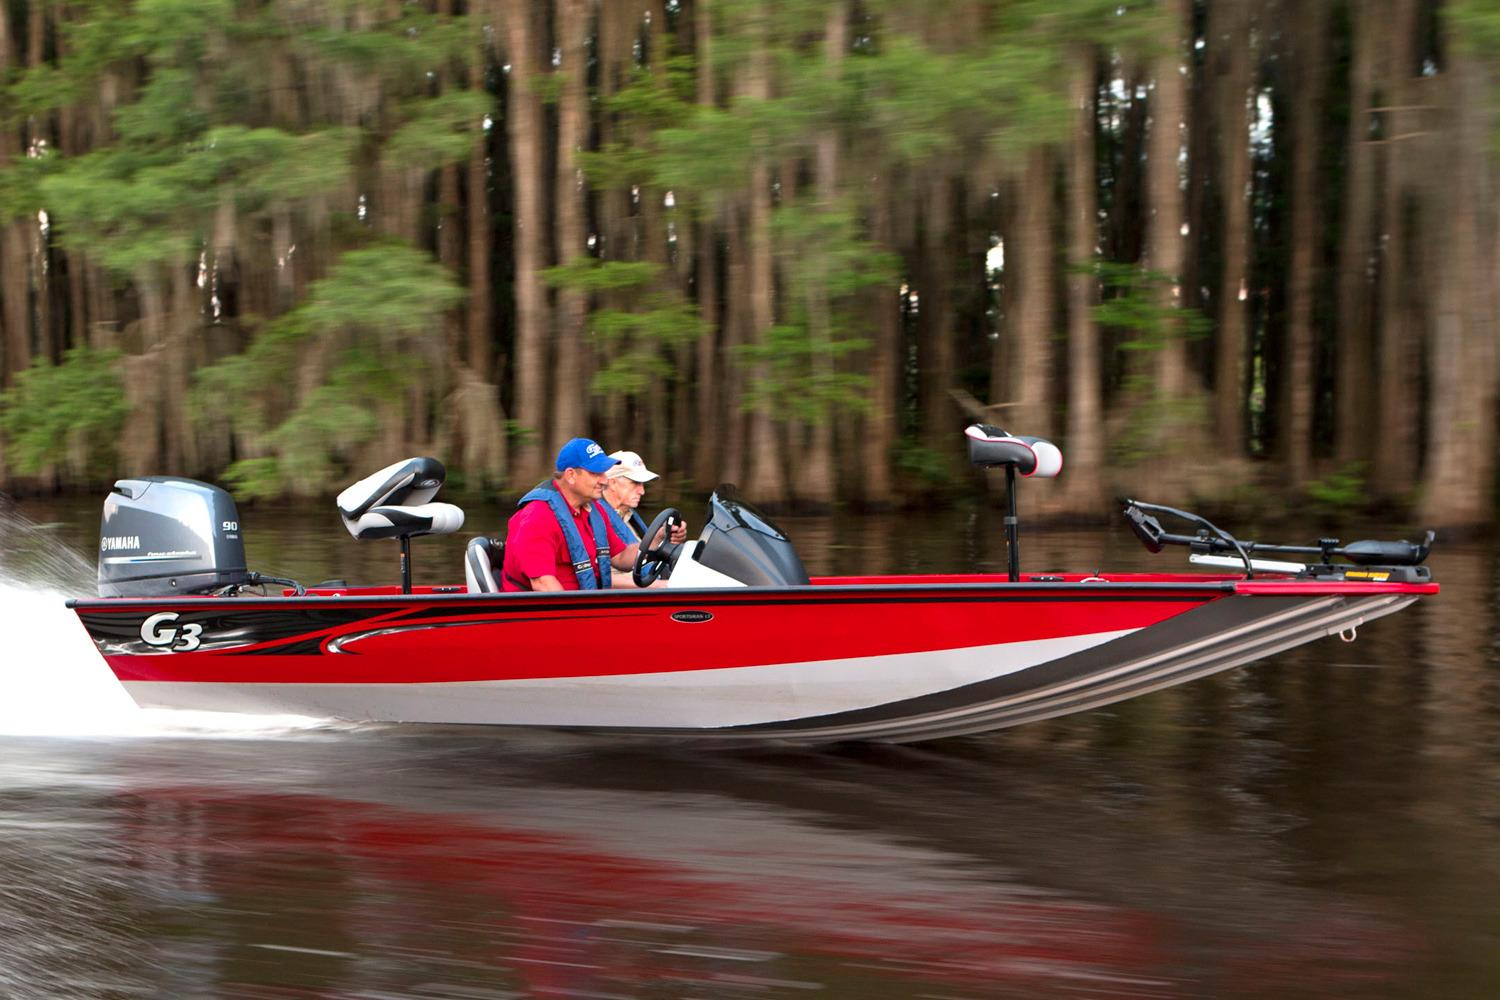 2016 G3 Sportsman 17 in Fleming Island, Florida